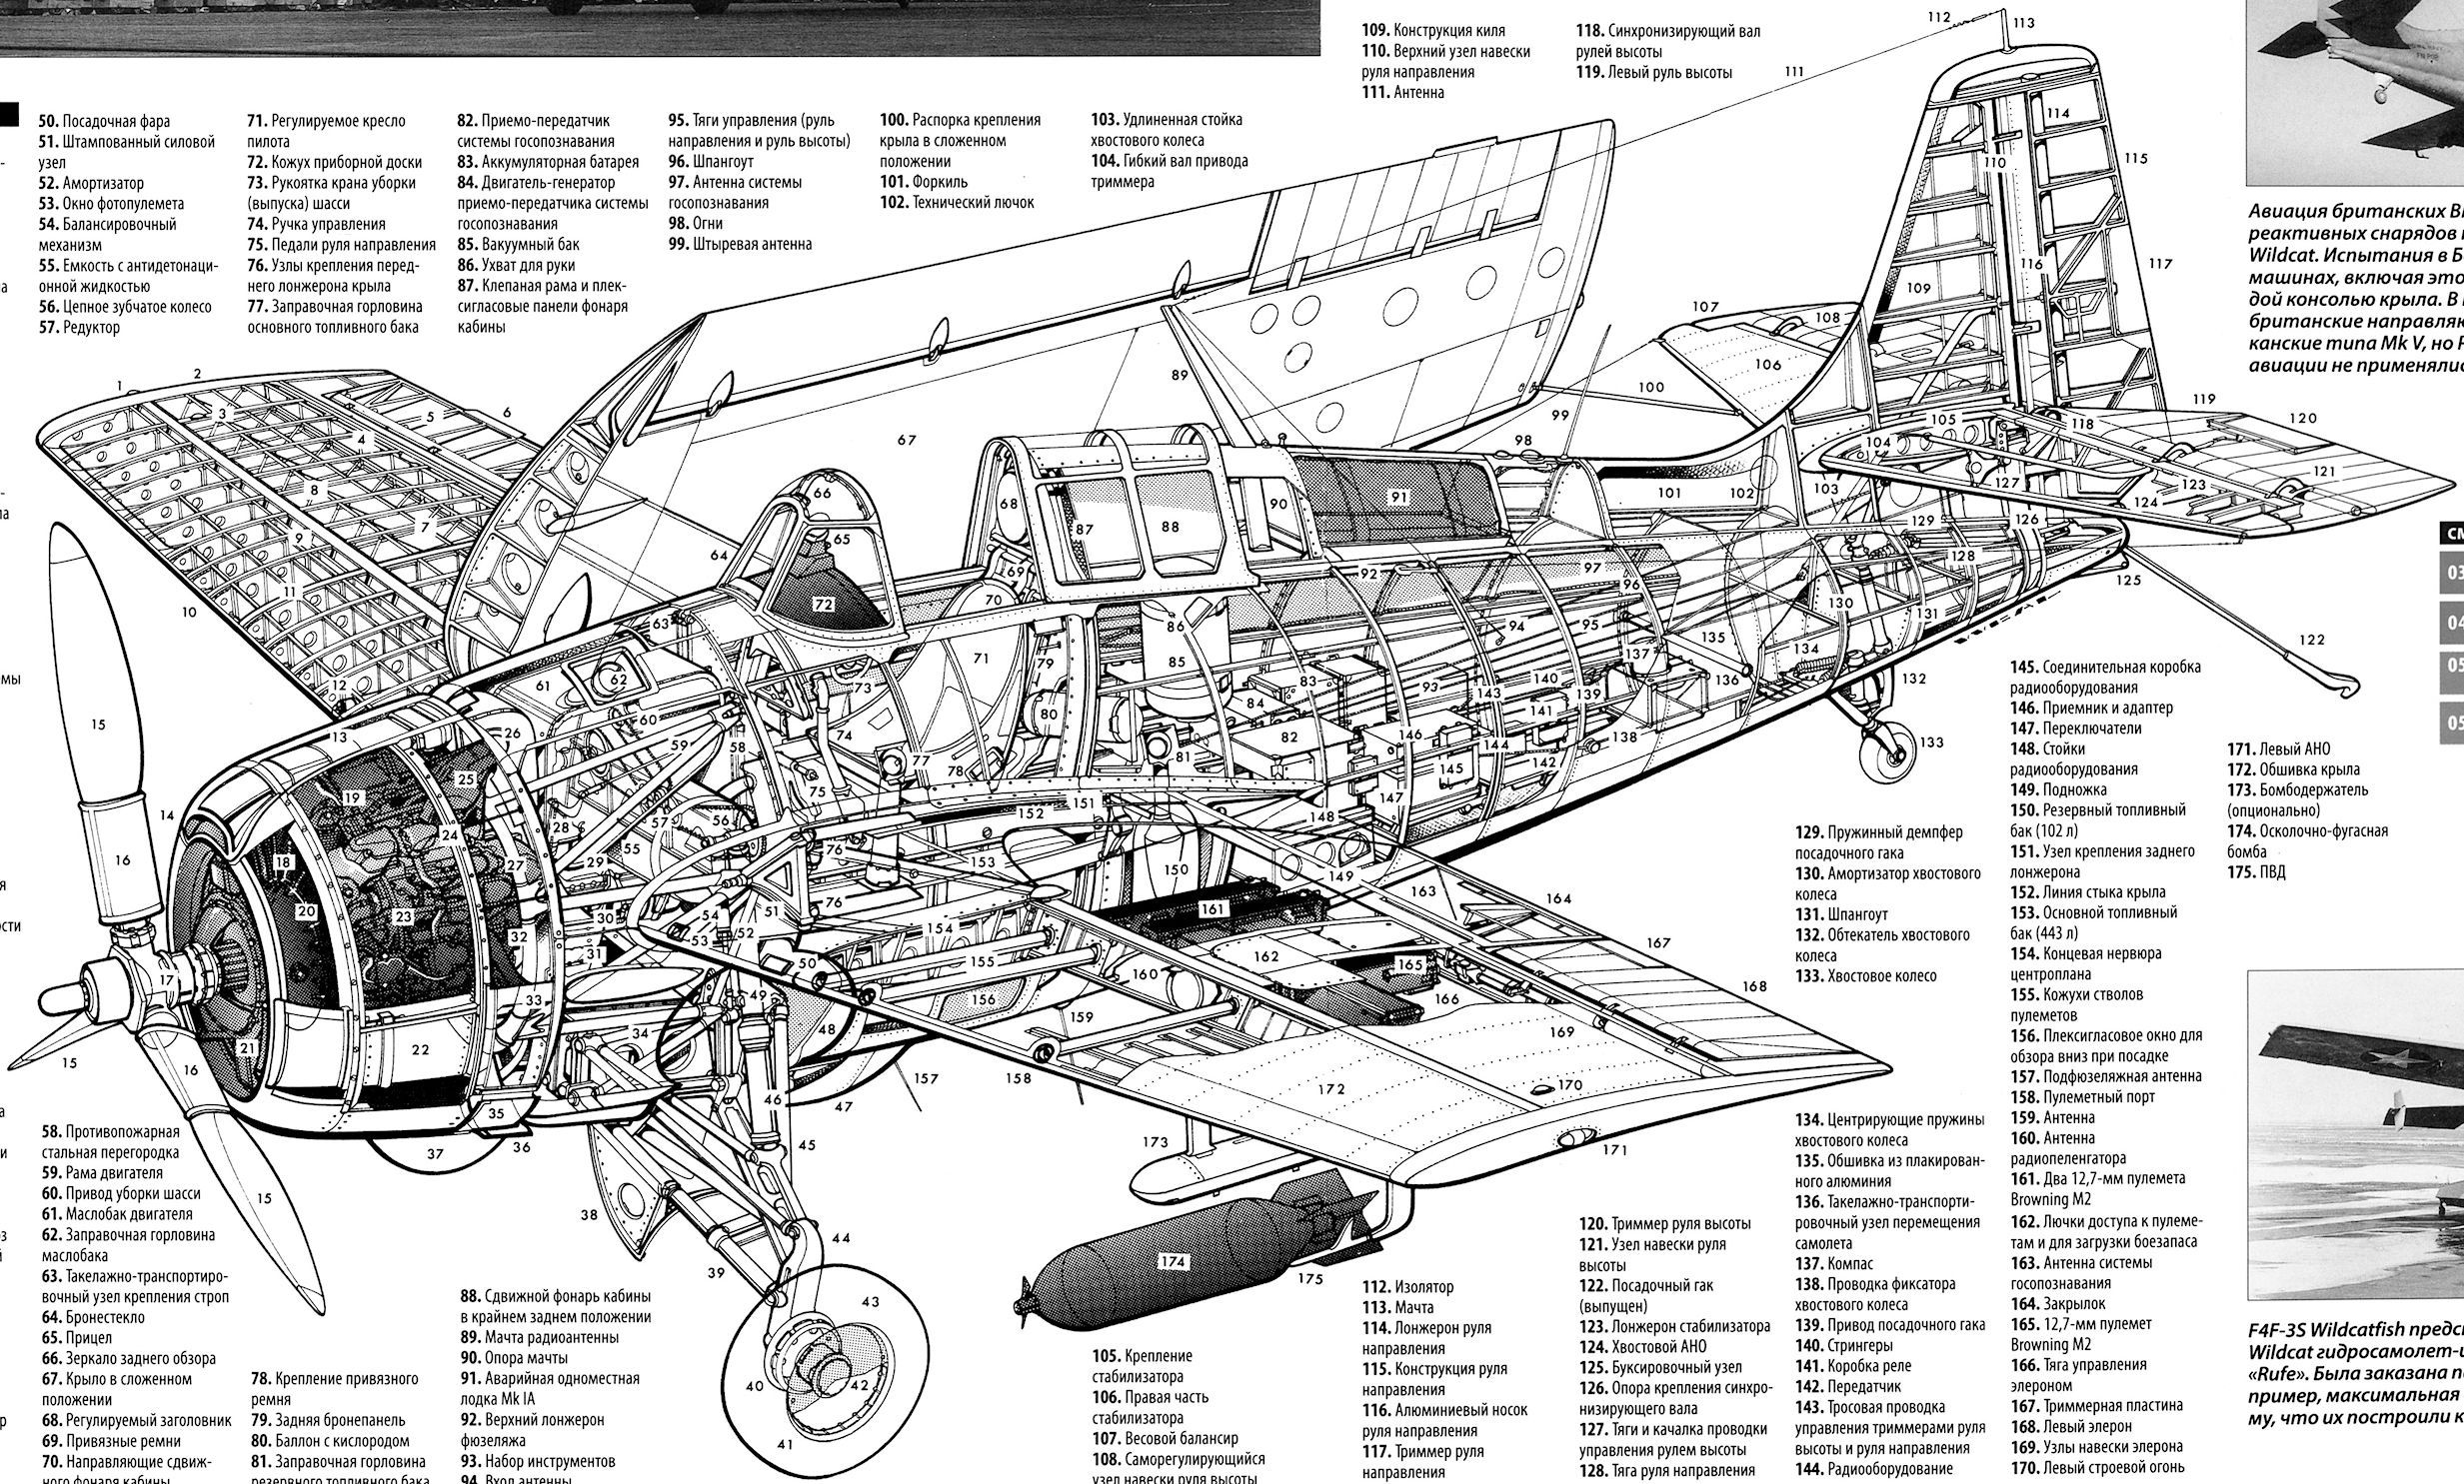 airplane cutaway google military cutaways. Black Bedroom Furniture Sets. Home Design Ideas